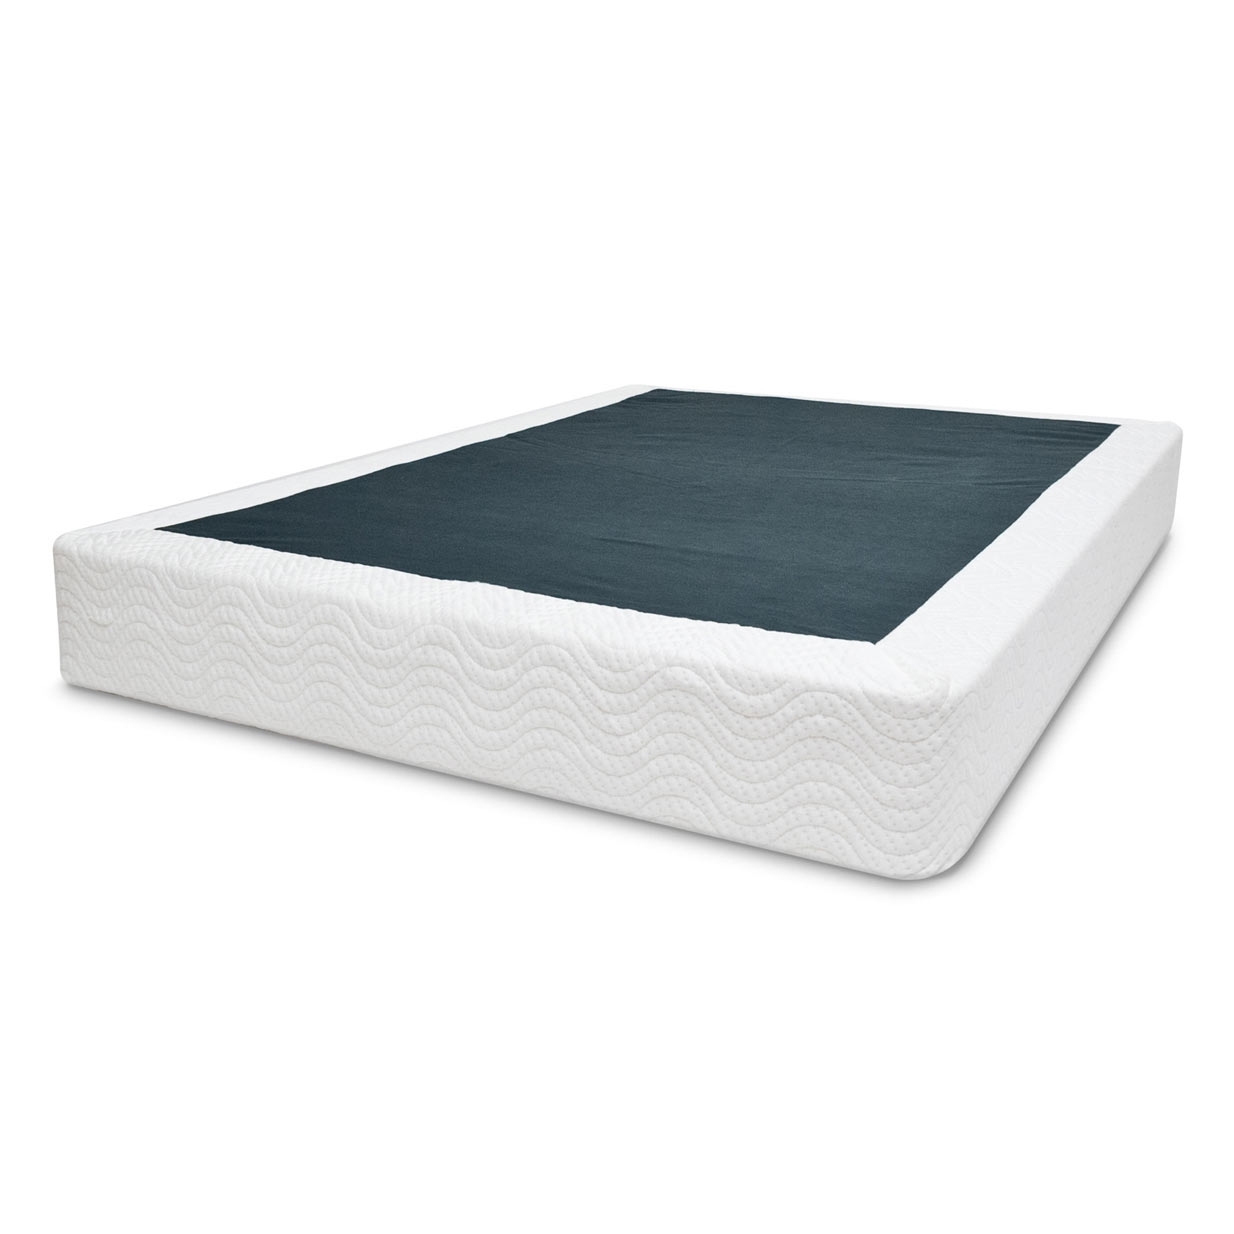 sc 1 st  FastFurnishings.com & Queen size Metal Box Spring Mattress Foundation with Cover Aboutintivar.Com